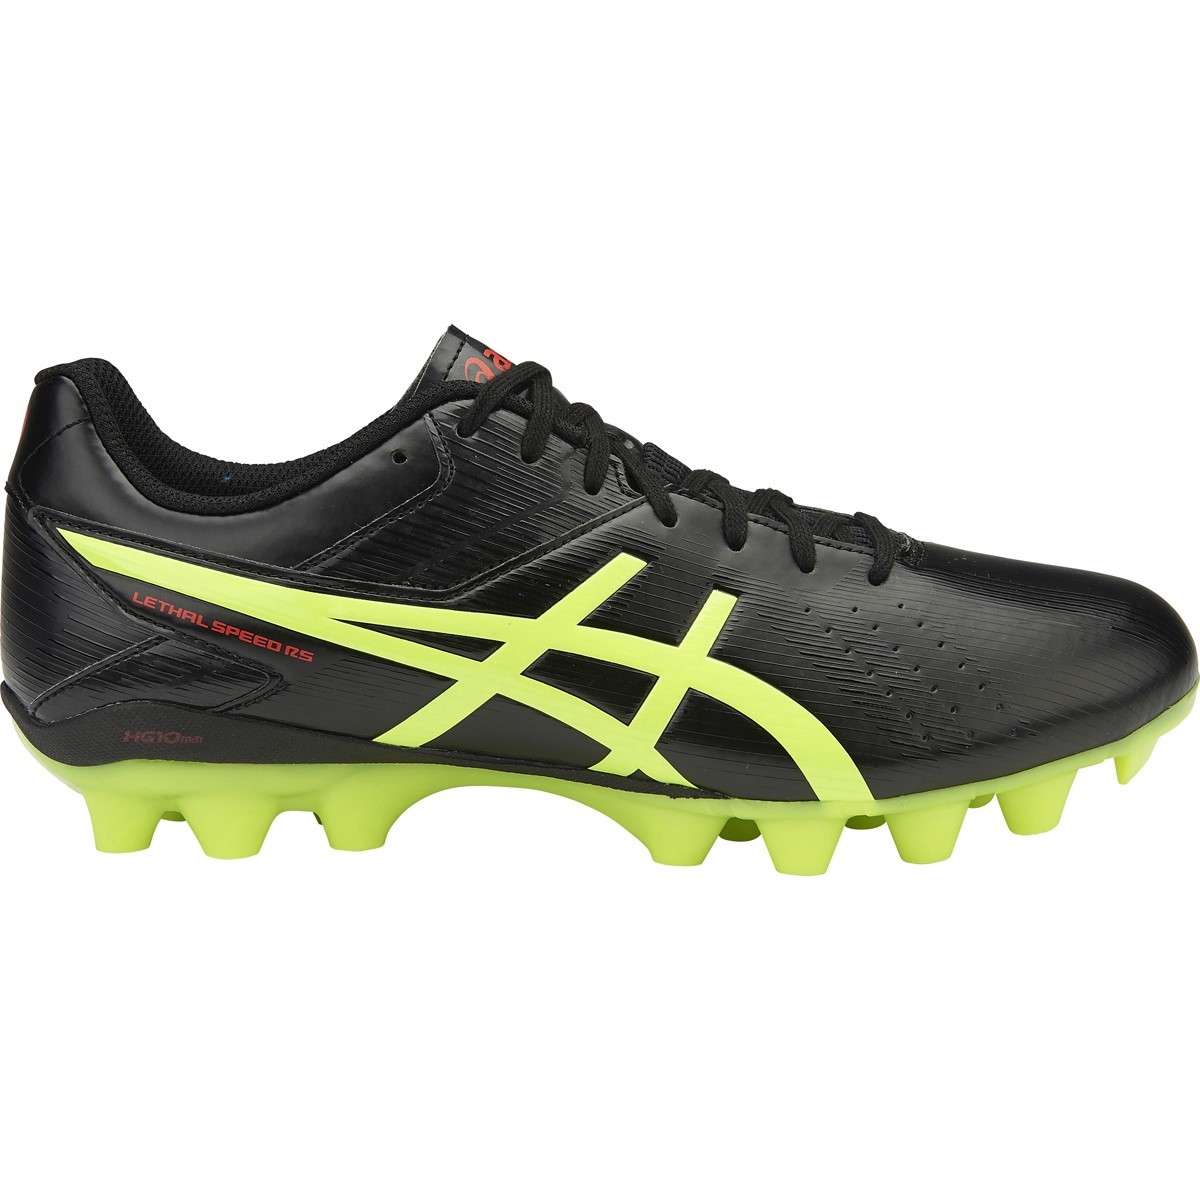 8055f391e Asics Lethal Speed RS - Mens Football Boots - Black Safety Yellow Vermilion